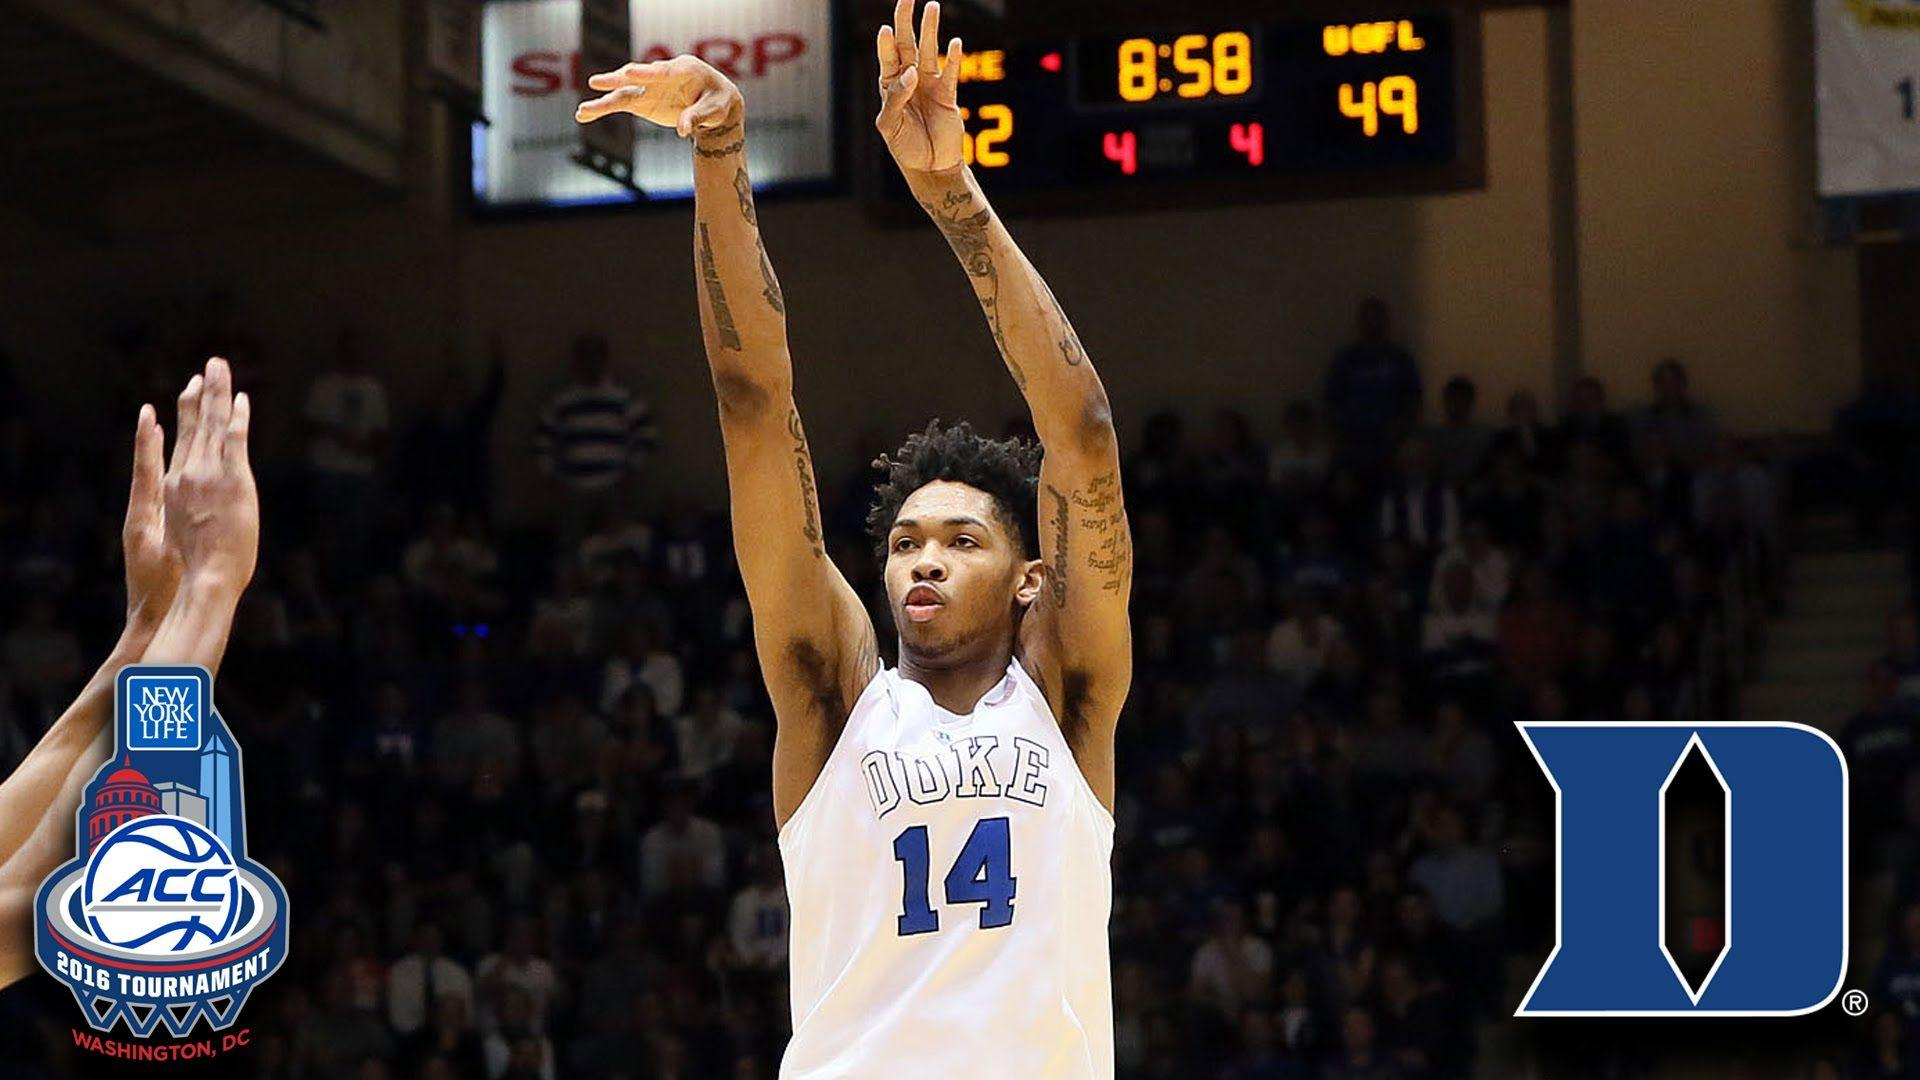 Brandon Ingram Makes Impressive ACC Tournament Debut vs. NC State